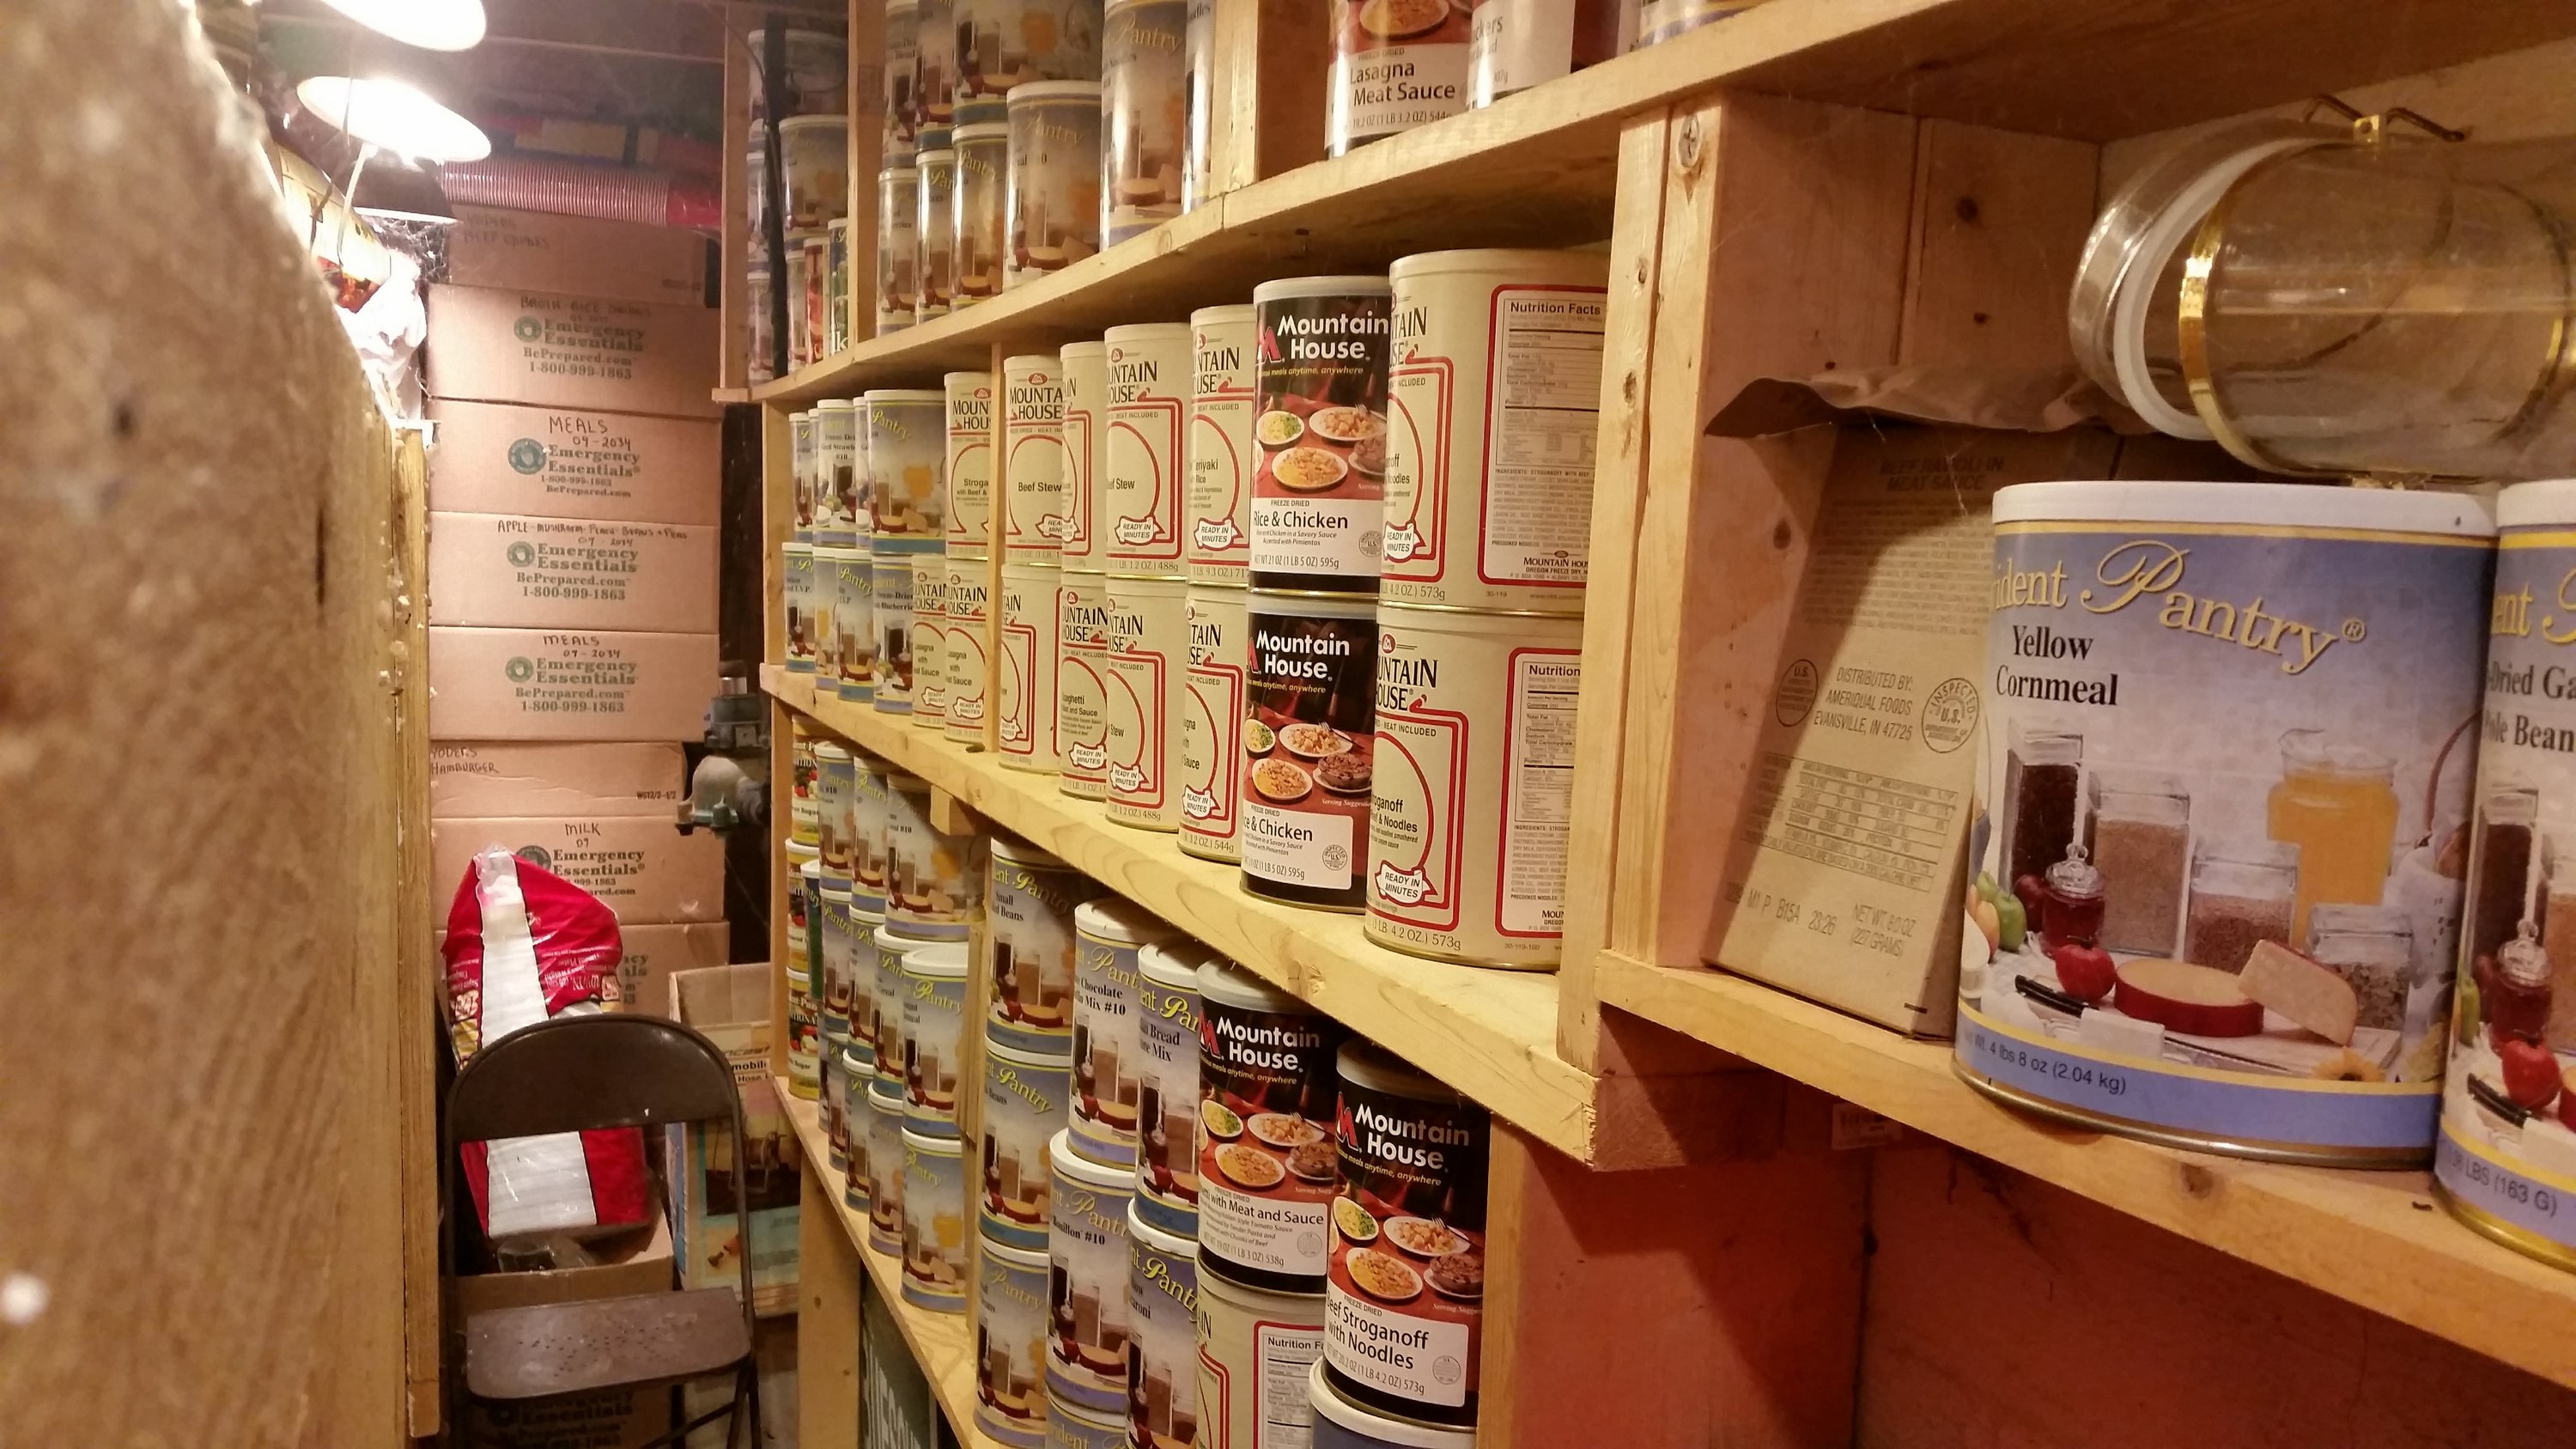 Not exactly gloating, stockpiling 'preppers' have a moment